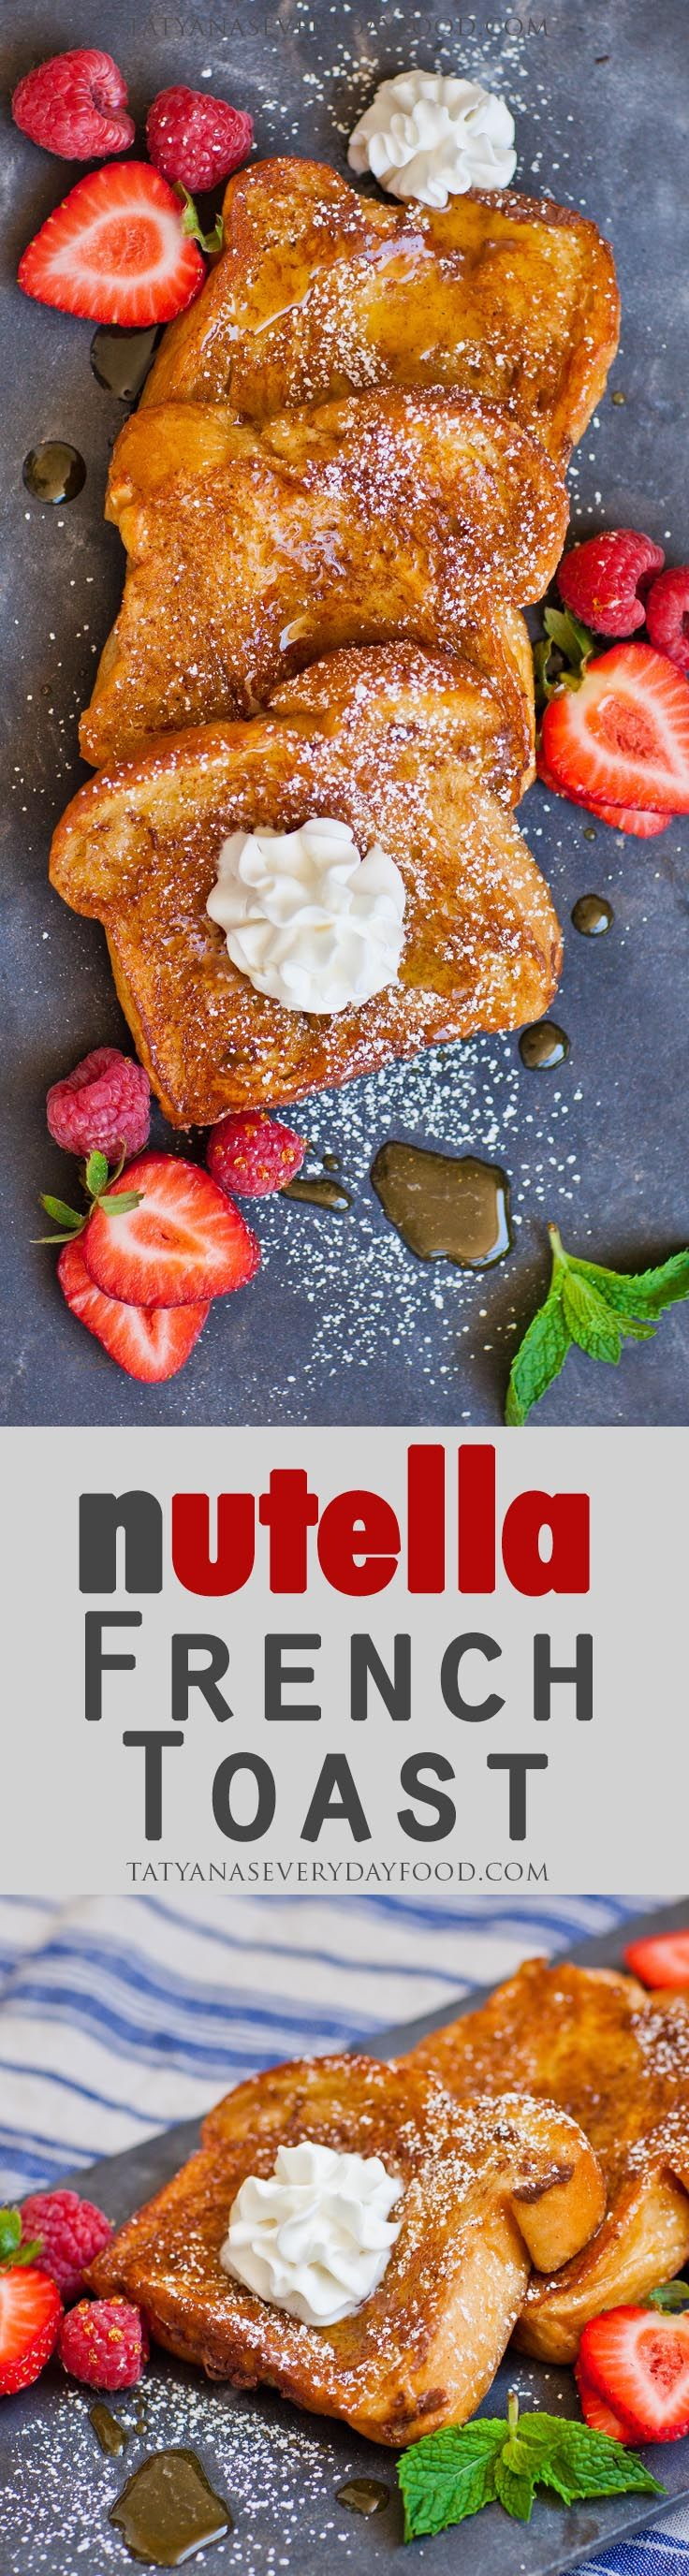 As if French Toast was not delicious enough on its own, I've taken it to another level and stuffed it full of Nutella! This Nutella-stuffed French Toast is literally stuffed with chocolate-y Nutella, dipped in a cinnamon custard and sprinkled with cinnamon sugar for a caramelized finish. It's perfect for weekend brunches or when you […]